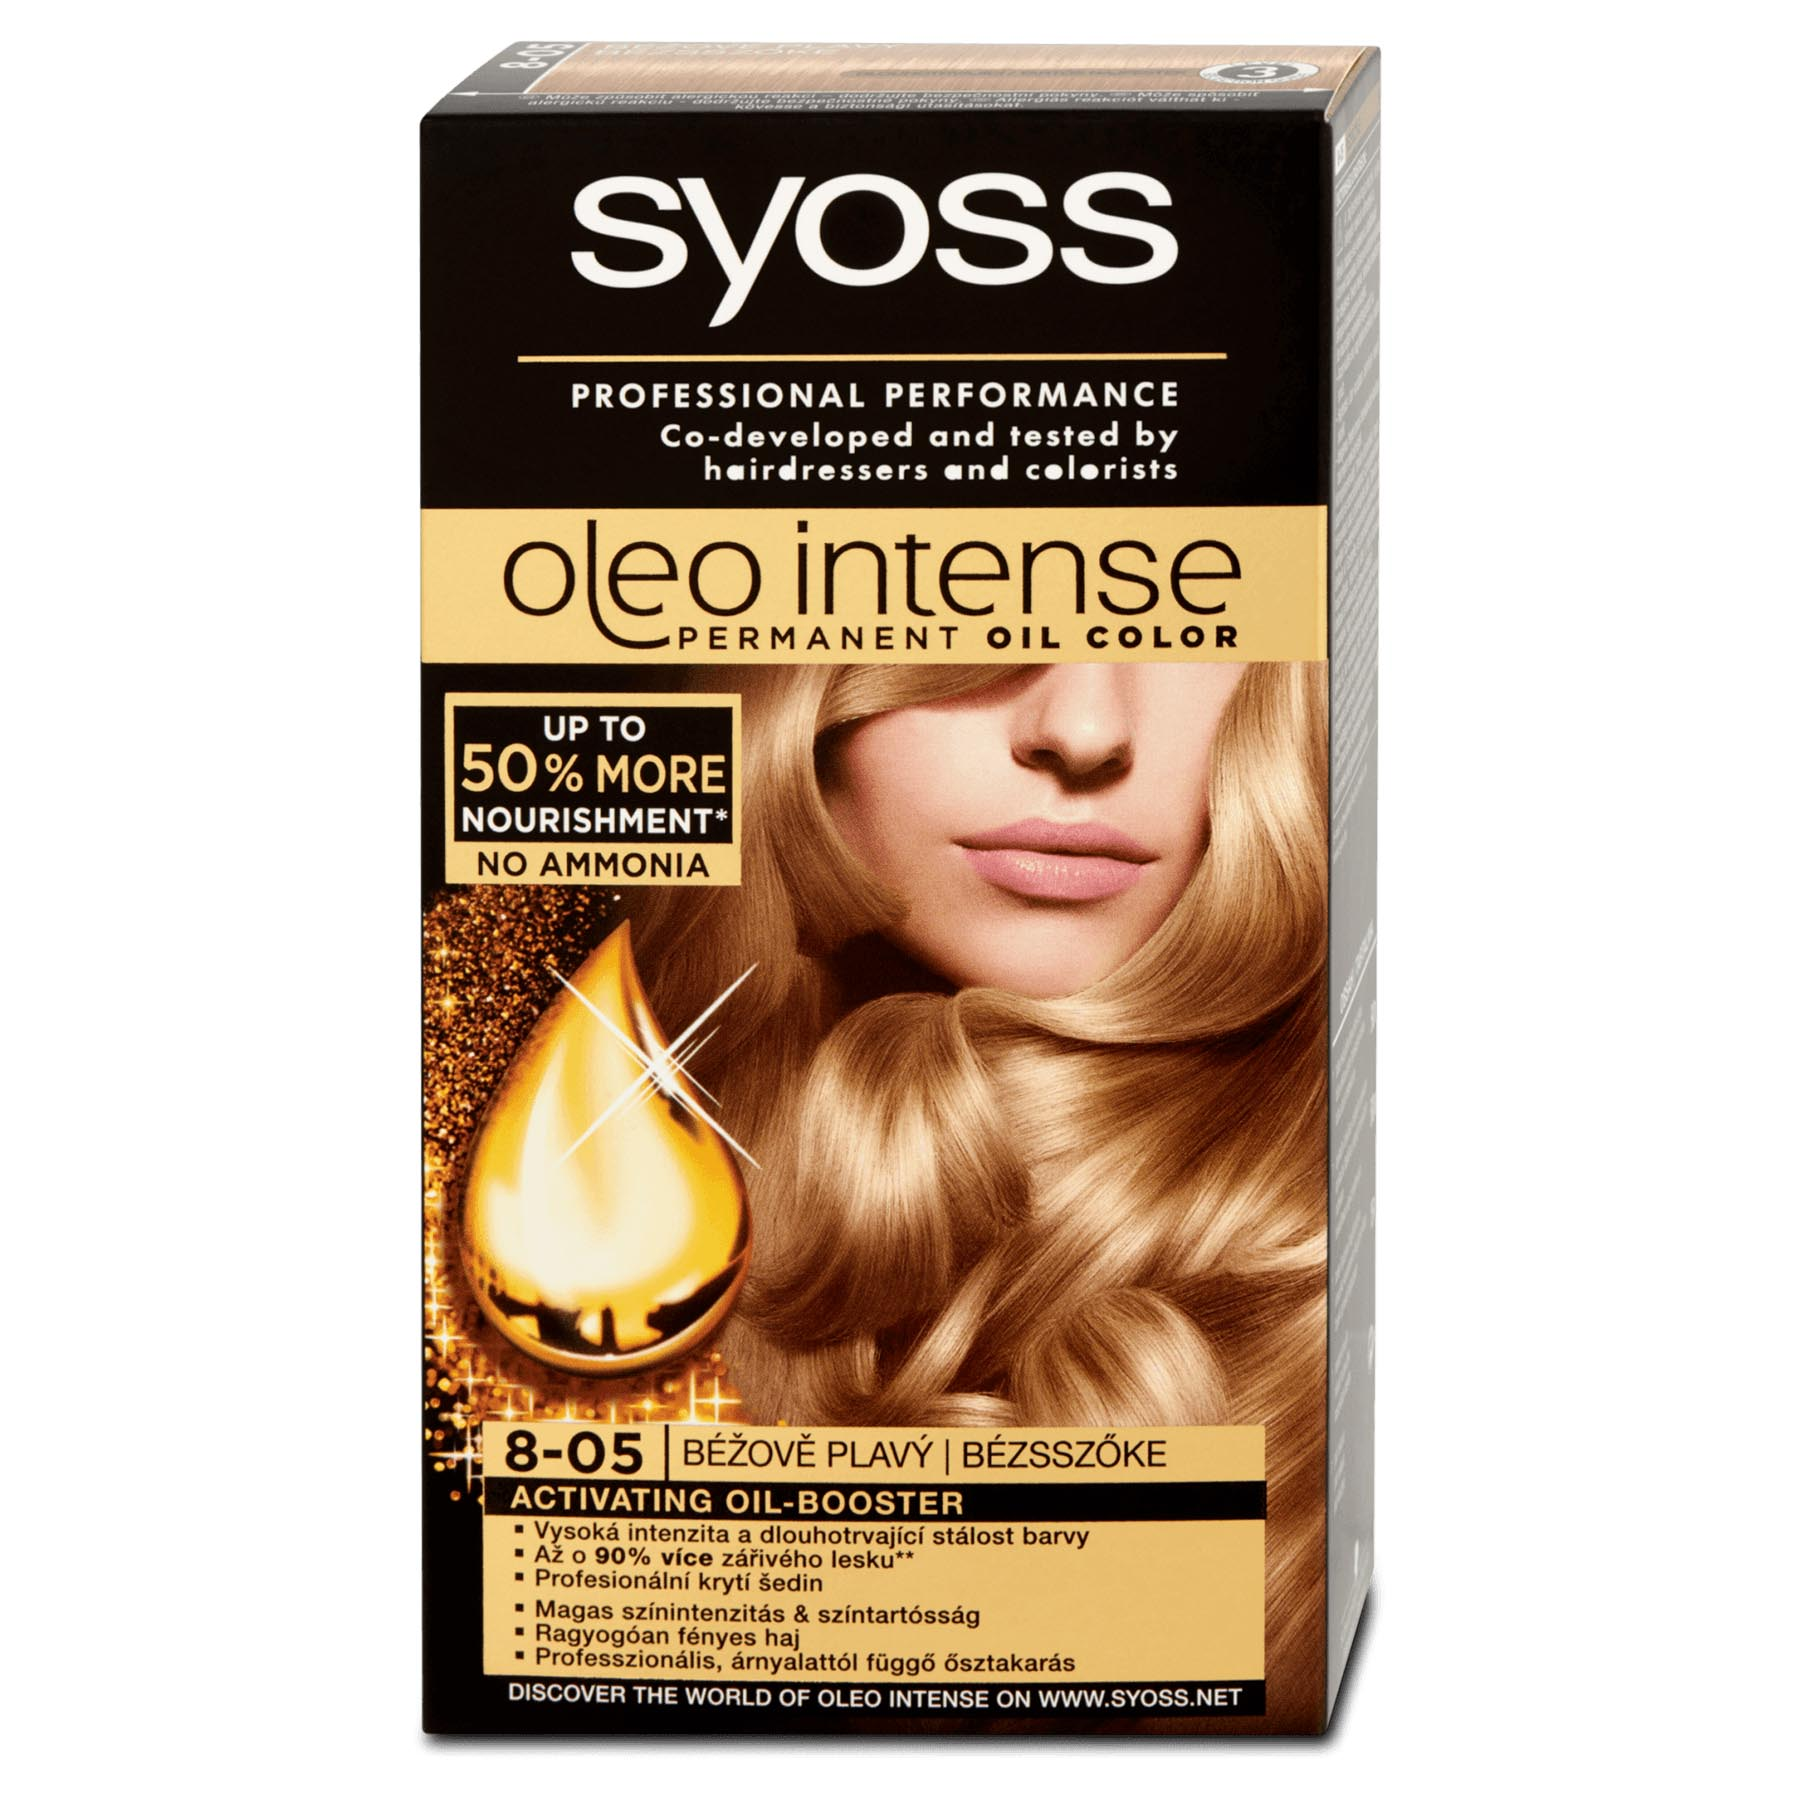 Syoss Oleo Intense Permanent 8-05 Beige Blond Hair Oil Color ...